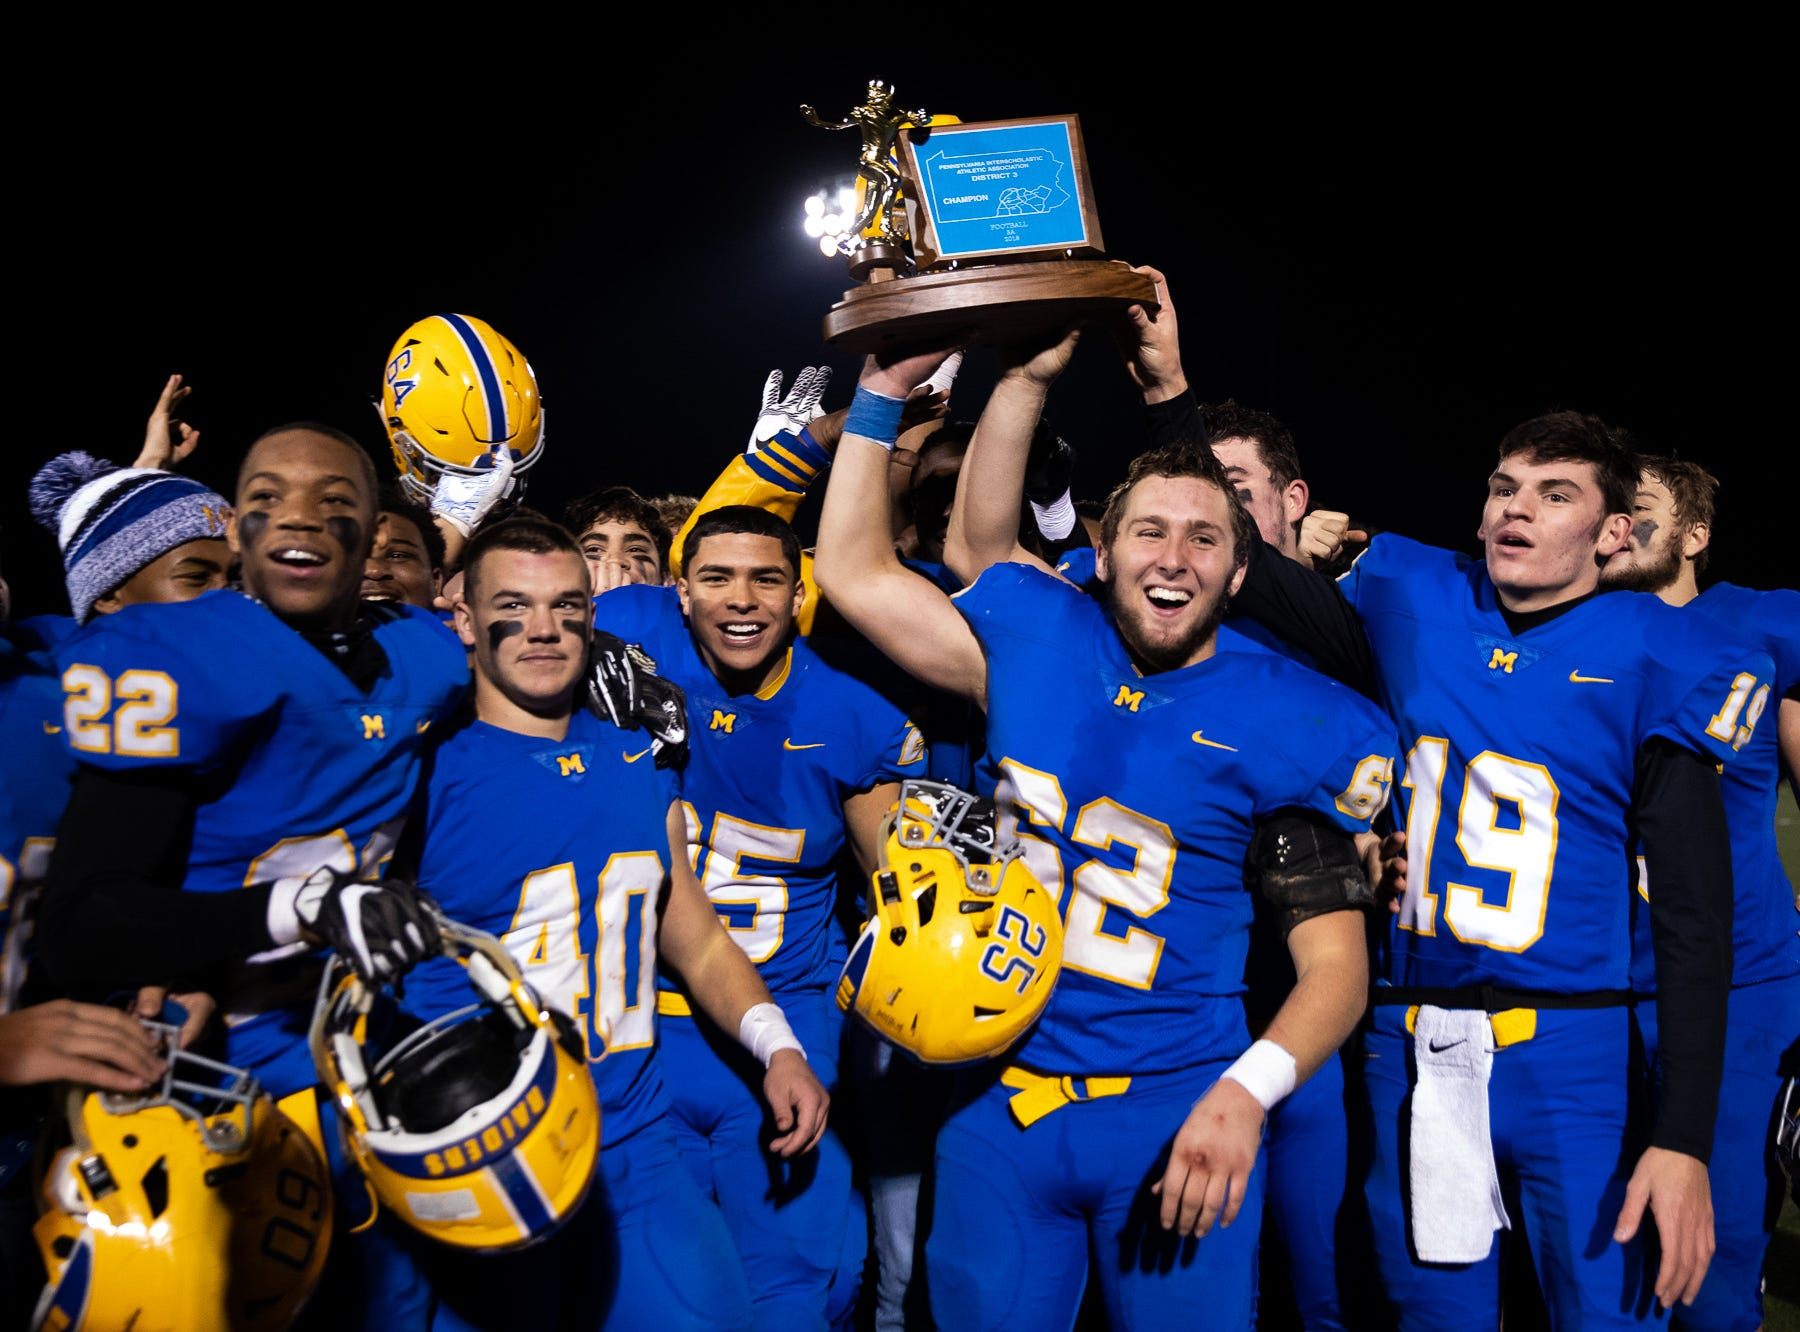 The Middletown Raiders celebrate after the District 3 Class 3A championship game against Bermudian Springs, Saturday, Nov. 17, 2018, at Cedar Crest High School. The Middletown Raiders defeated the Bermudian Springs Eagles 41-20 to win the title.